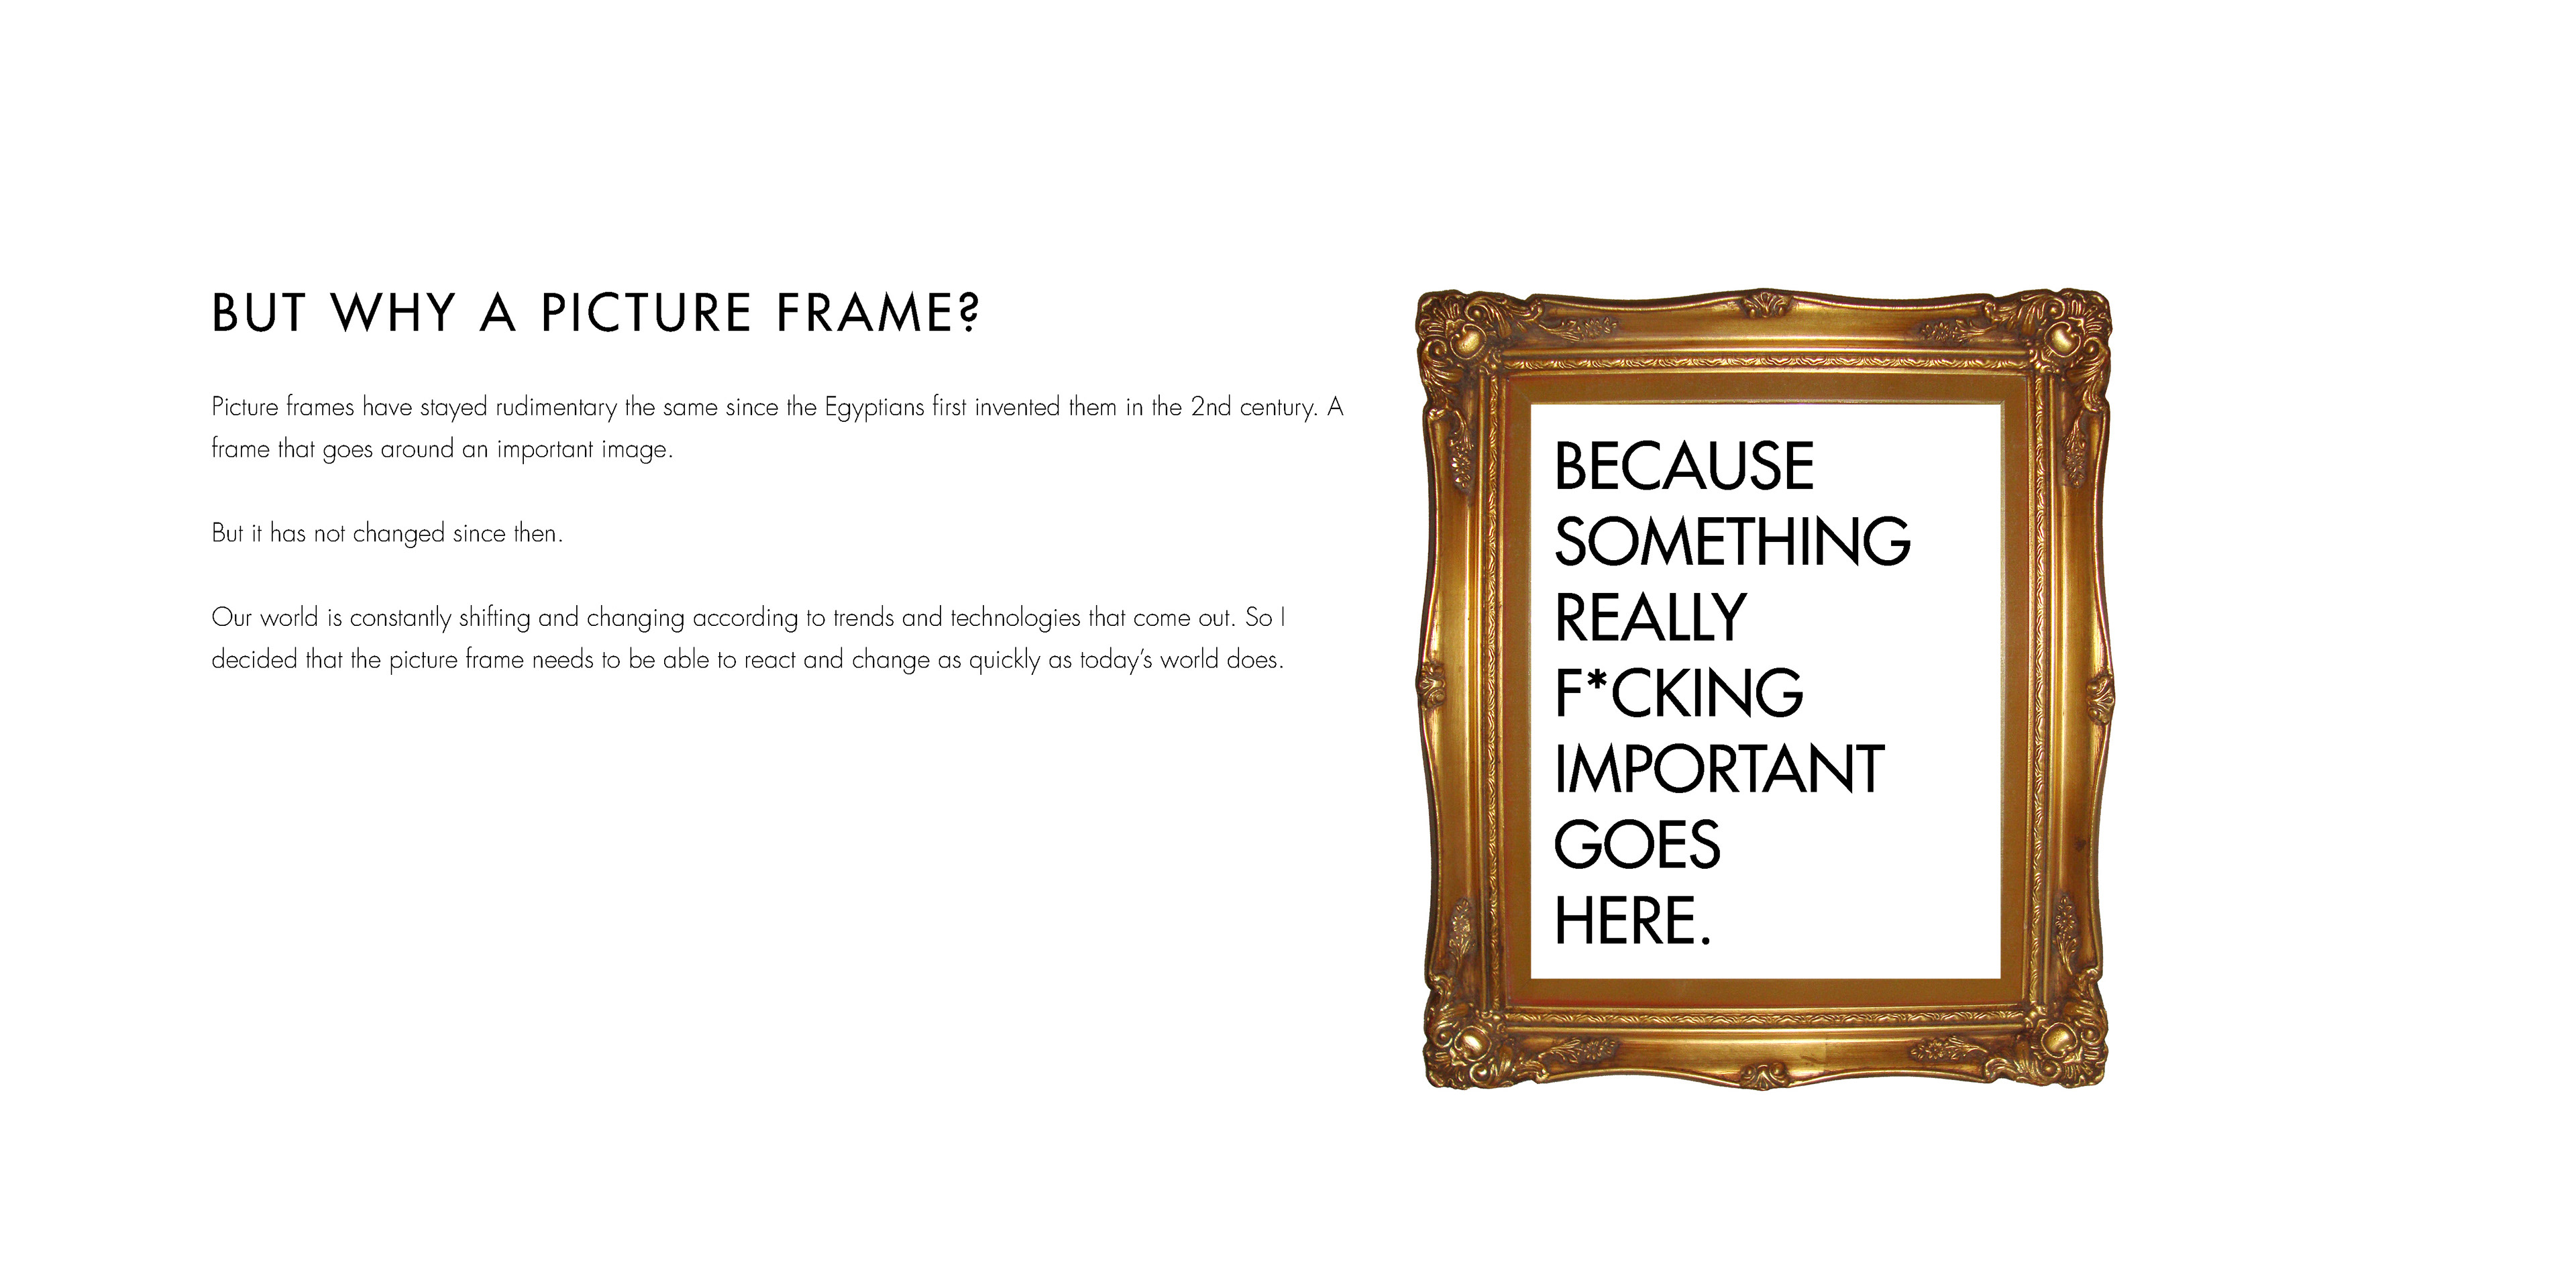 William turner uia your first scalable 3d printed picture frame working 3d printed prototype jeuxipadfo Images